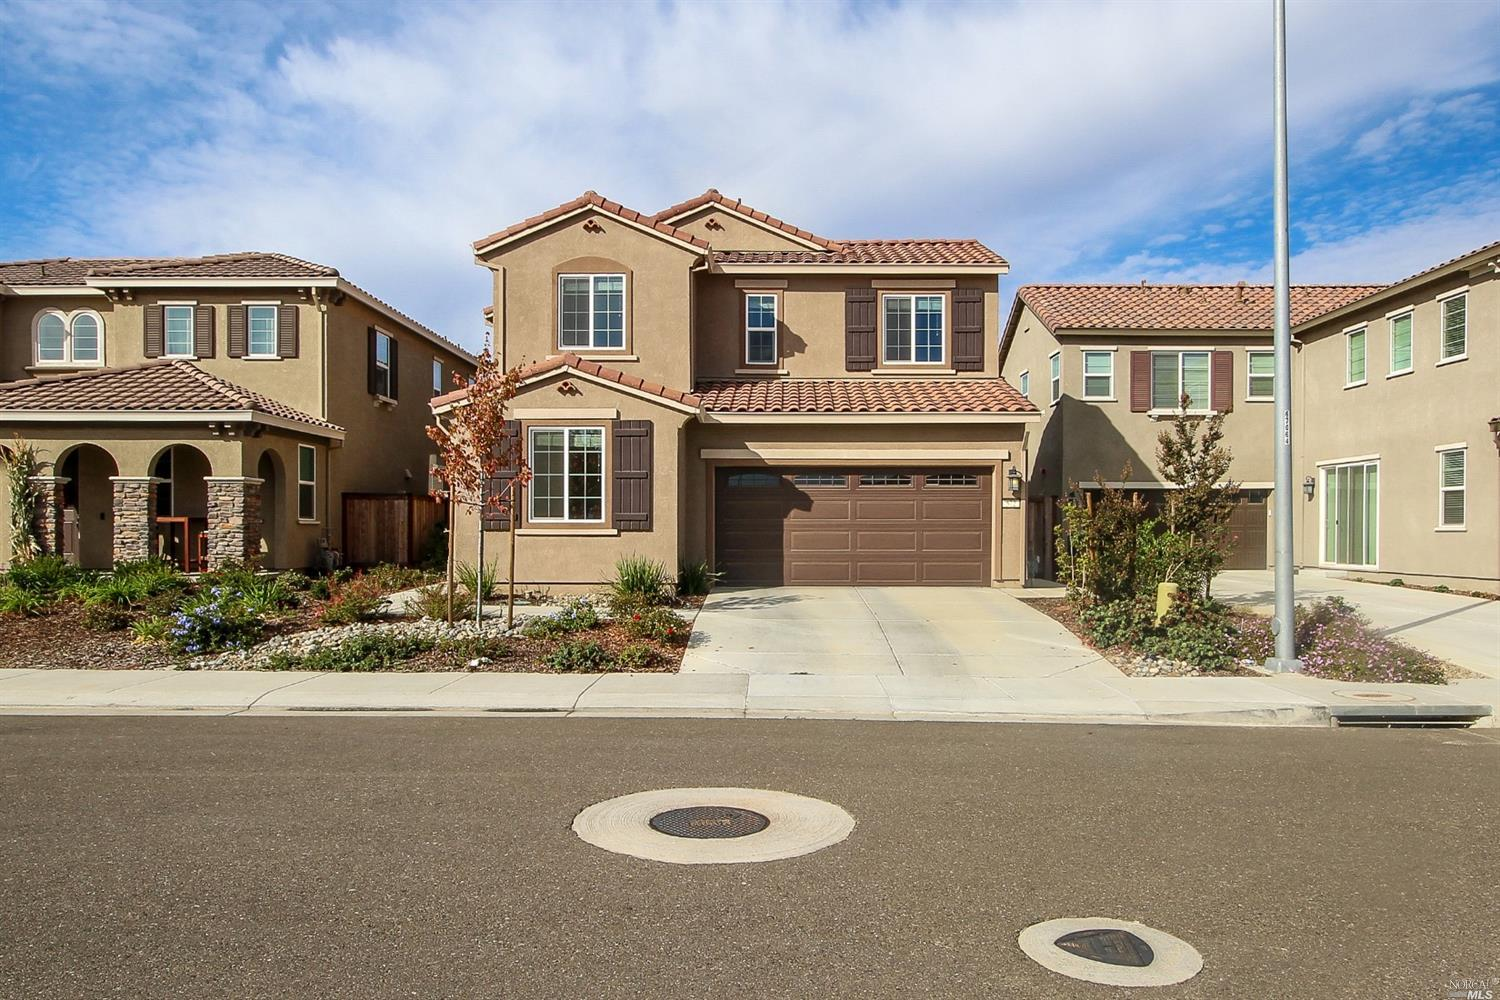 Beautiful upgraded new home! EZ commute to Travis AFB. Built in 2017 by Meritage Homes. One full bat